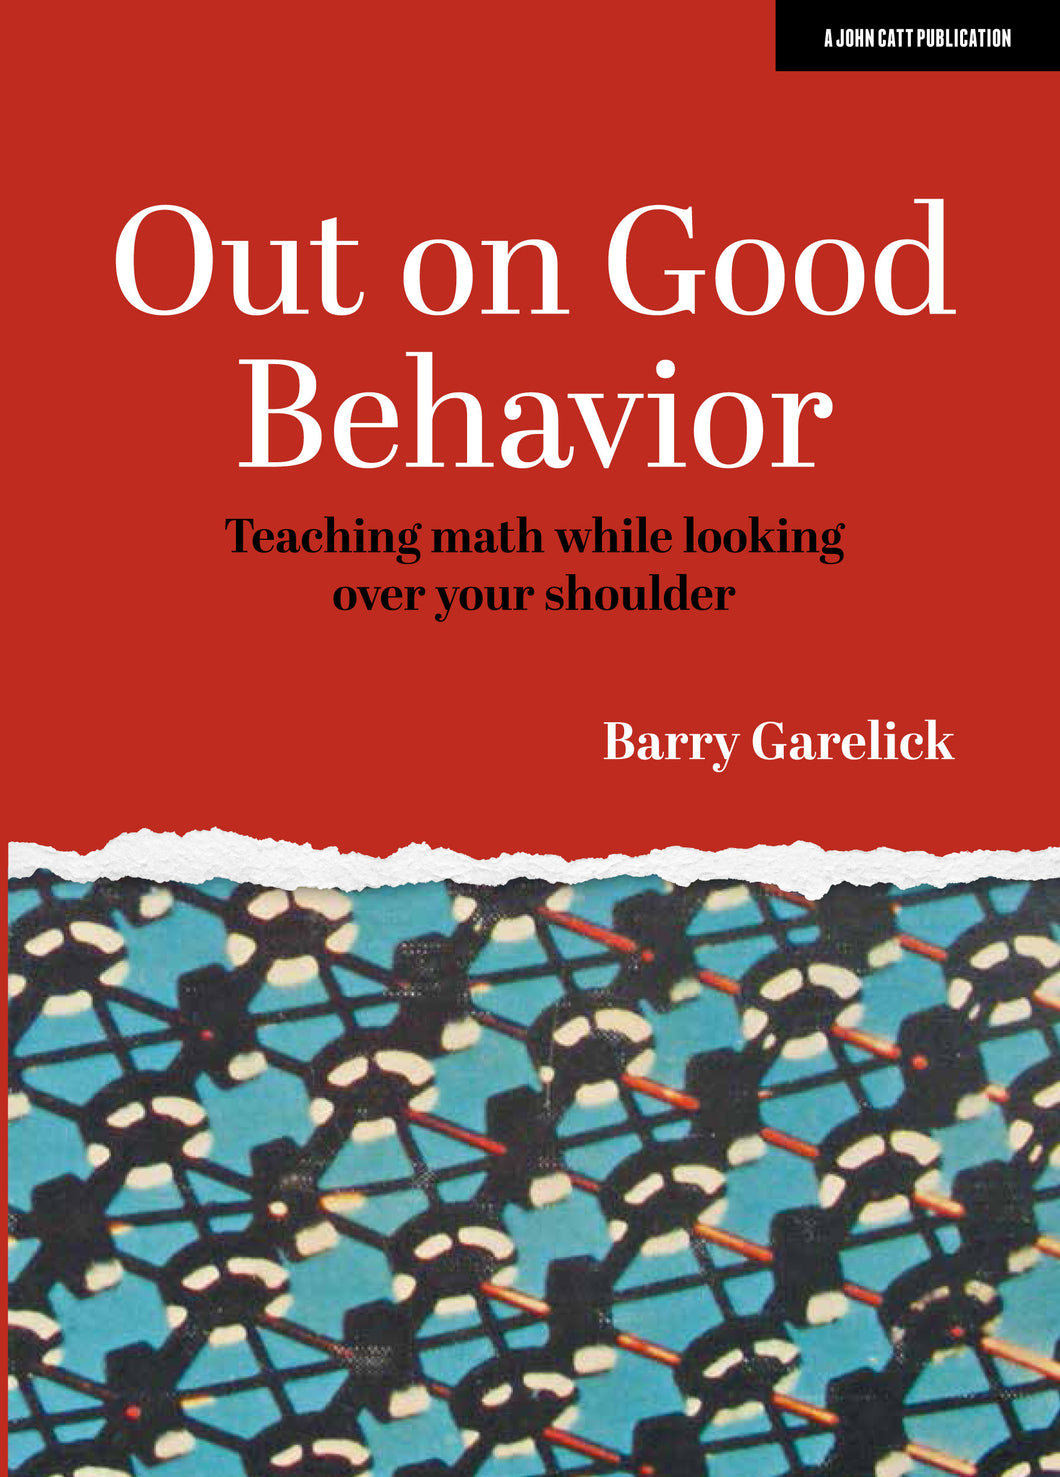 Out on Good Behavior:  Teaching math while looking over your shoulder